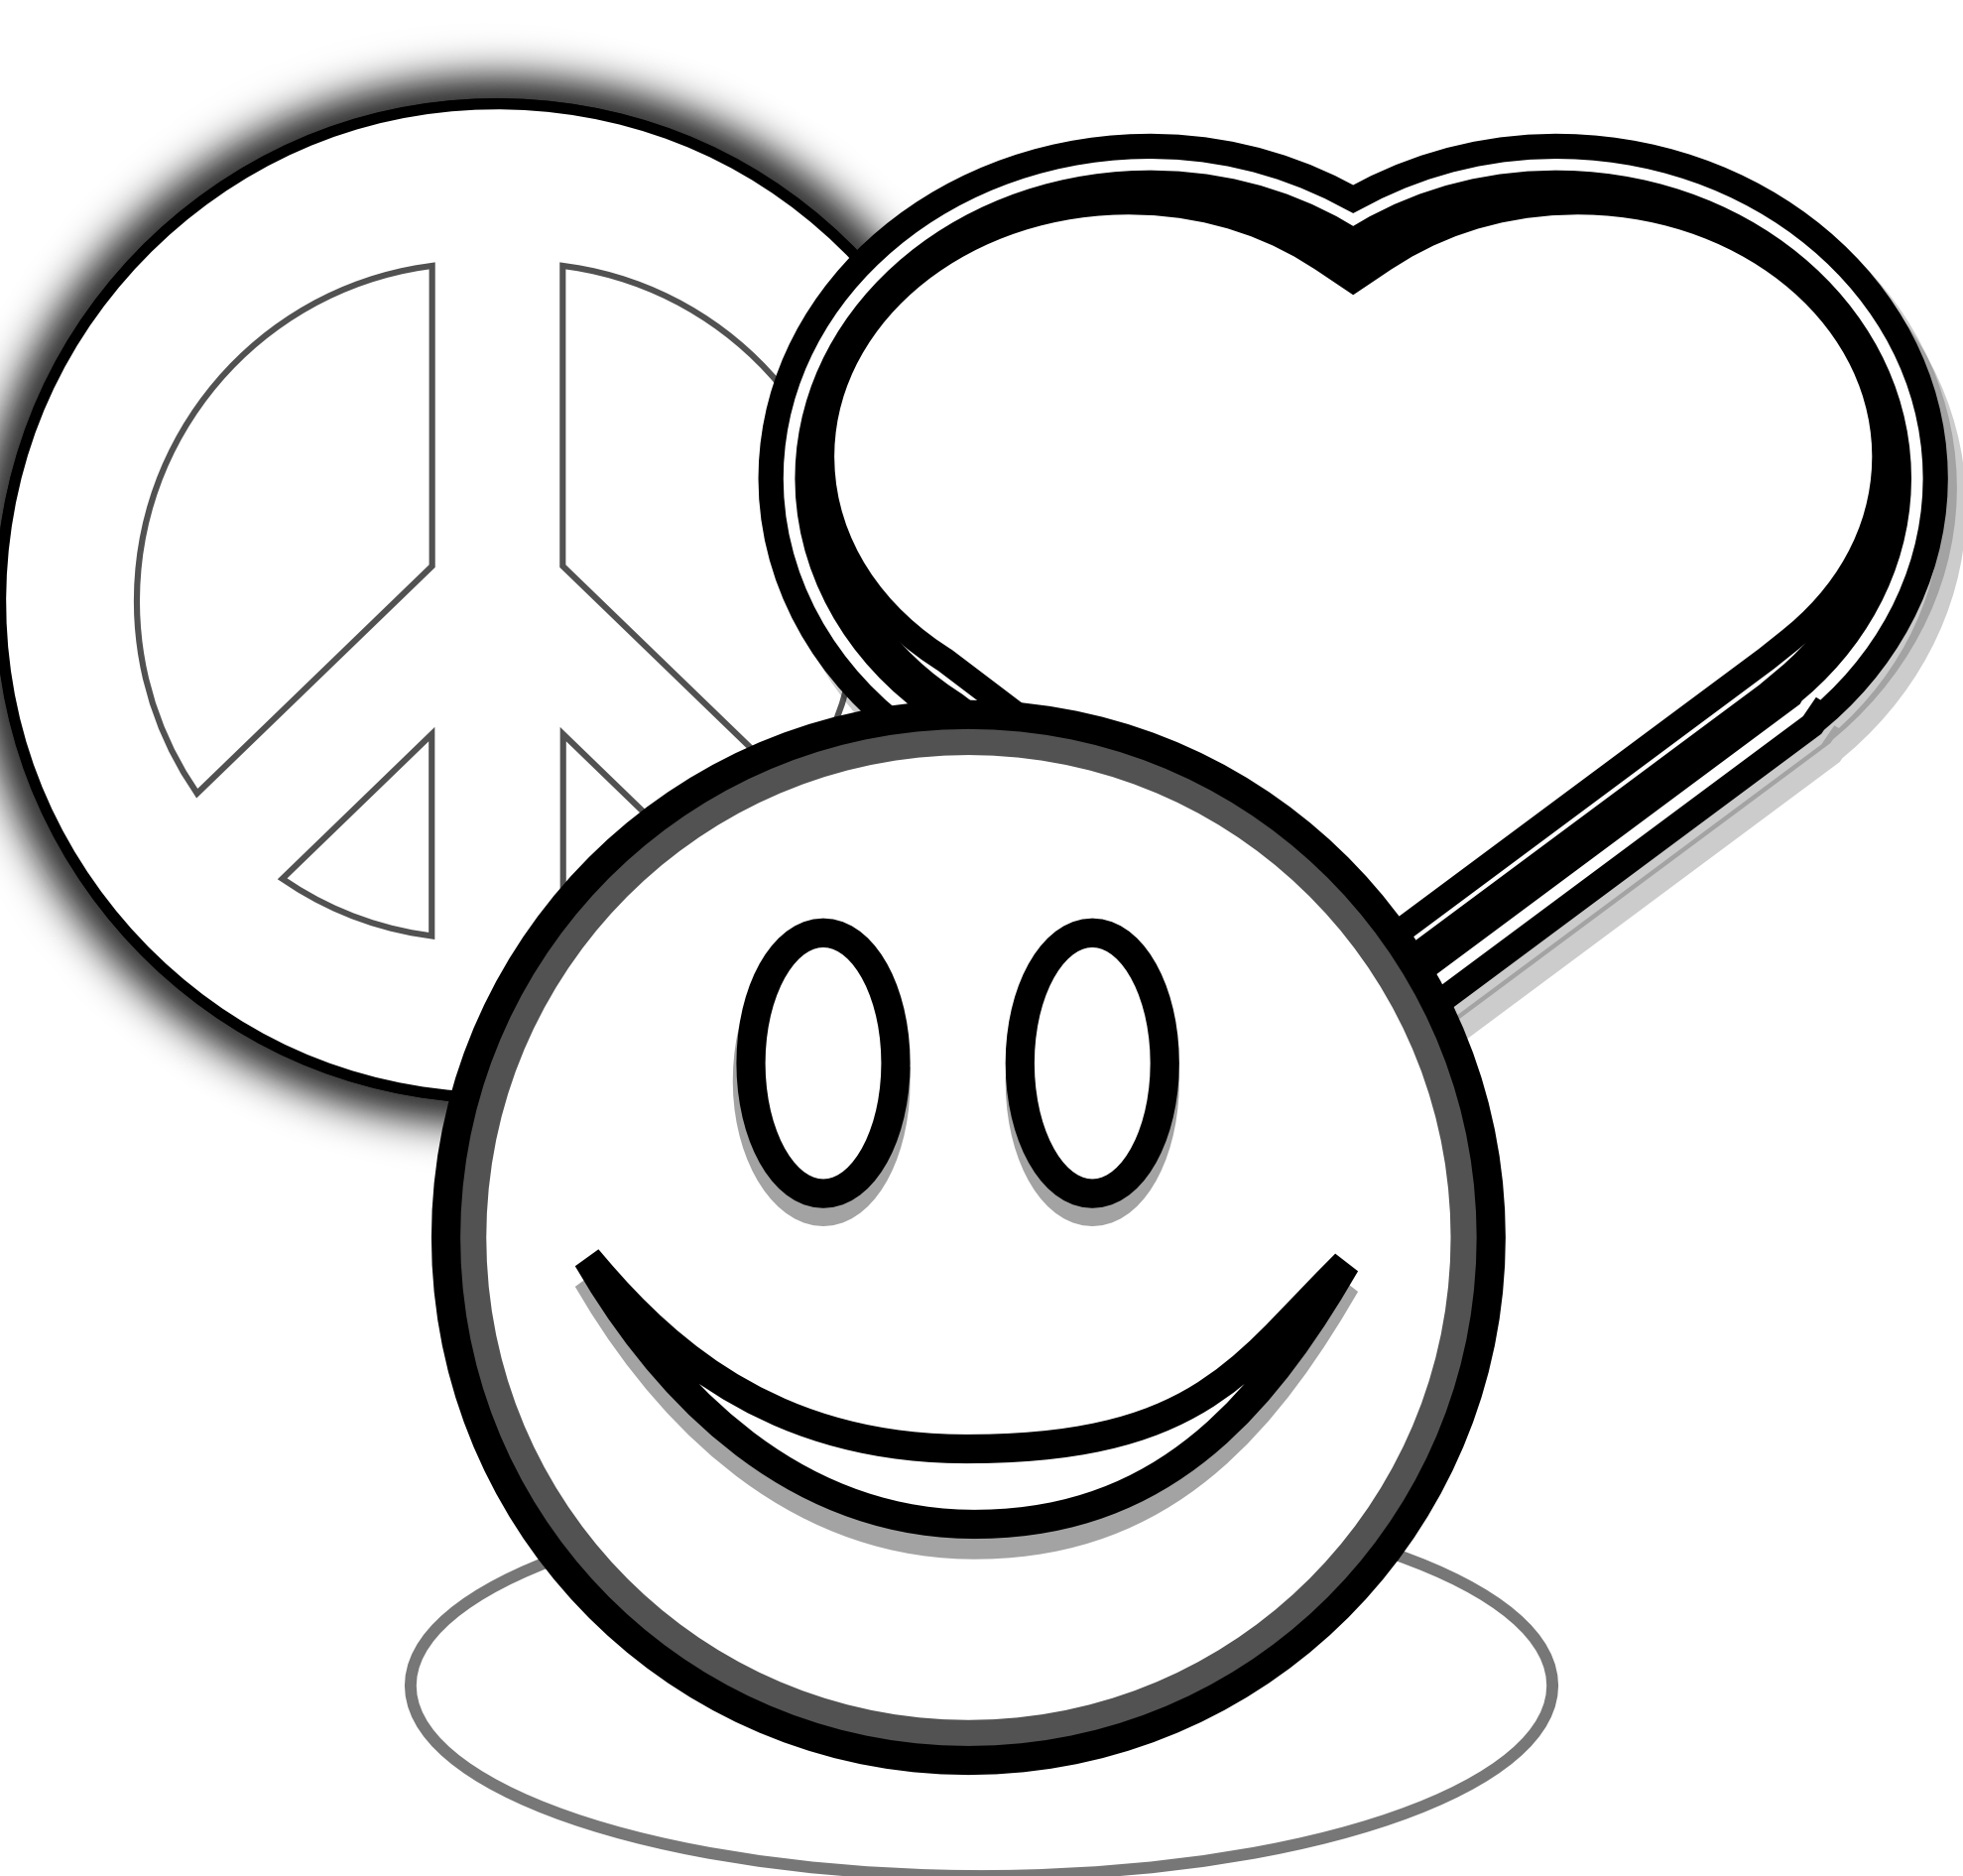 coloring sign free printable peace sign download free clip art free sign coloring